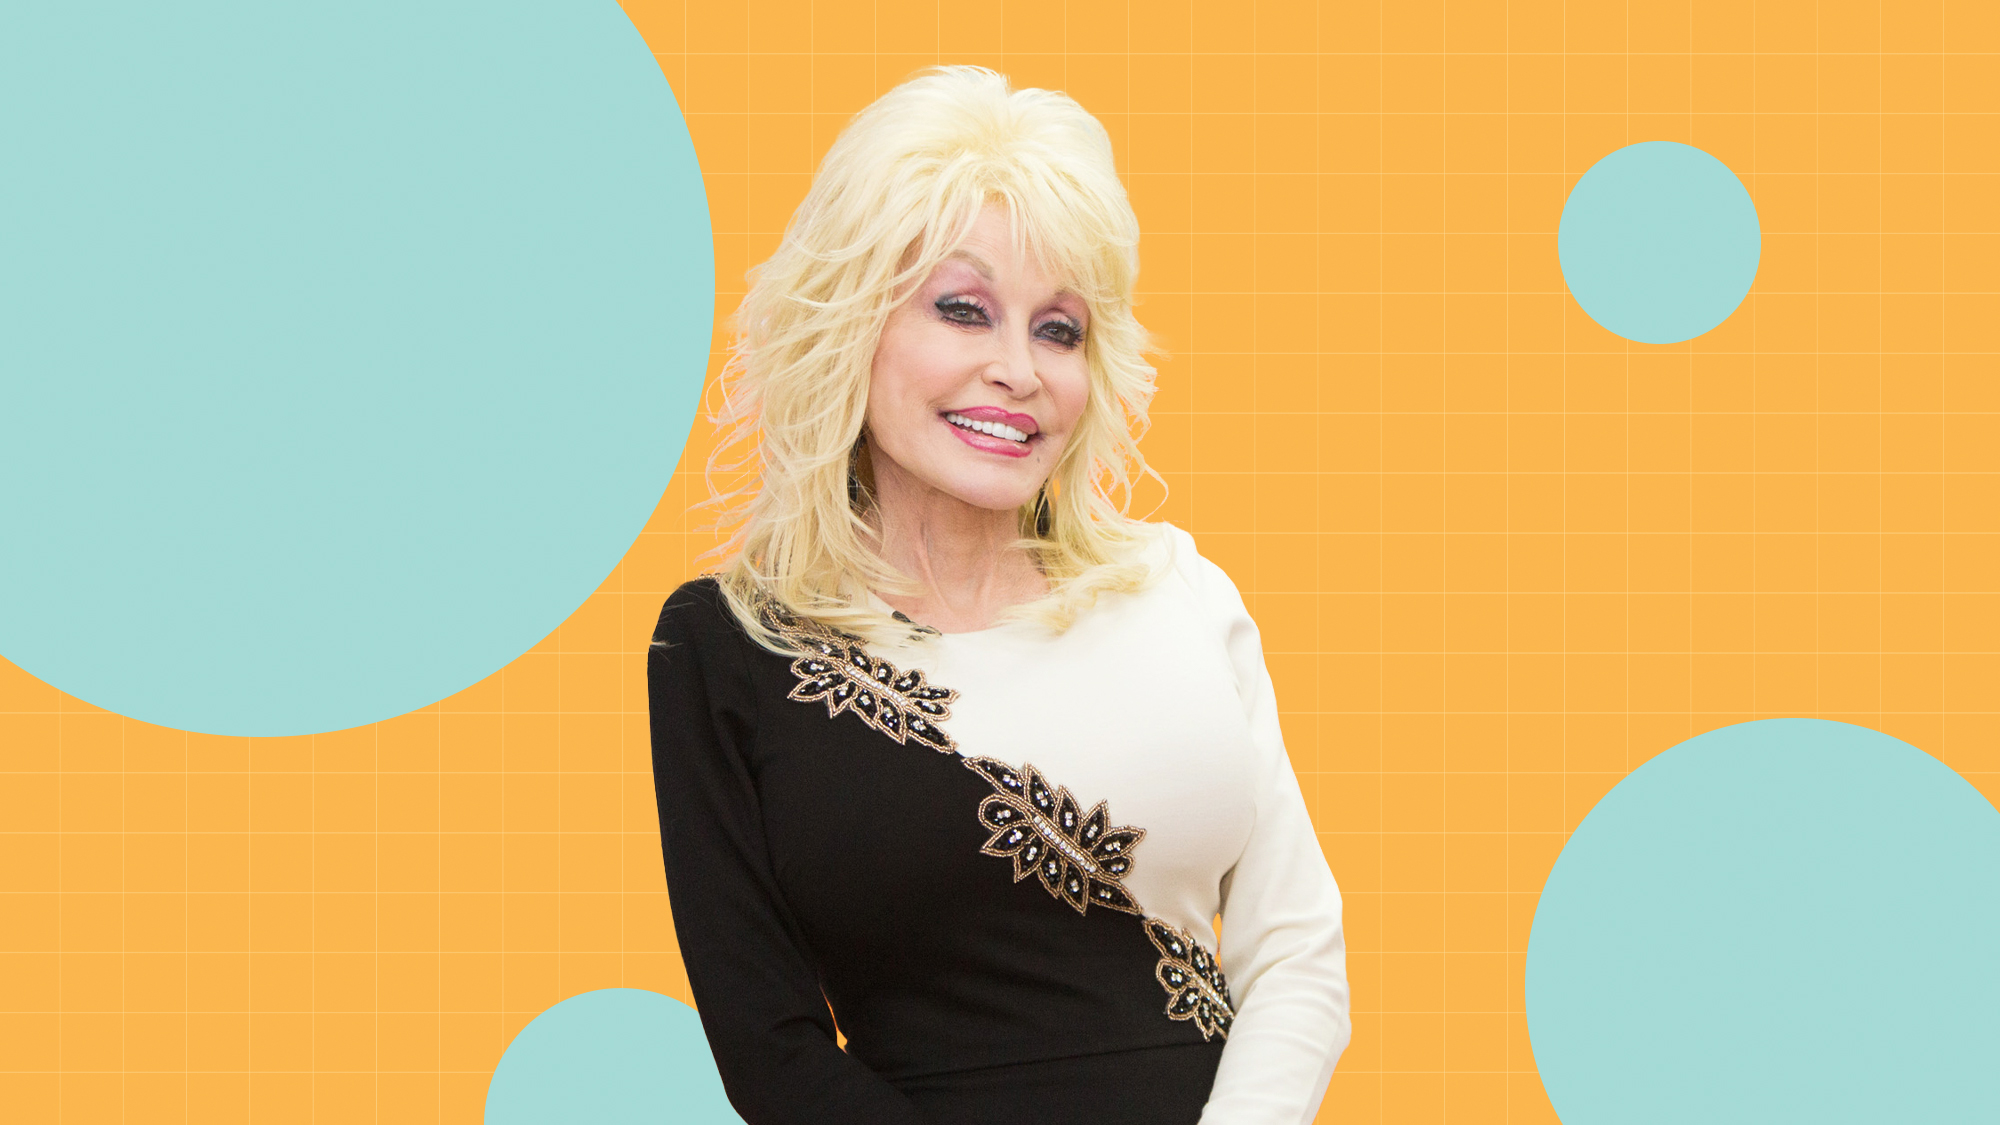 A portrait of Dolly Parton on a designed background